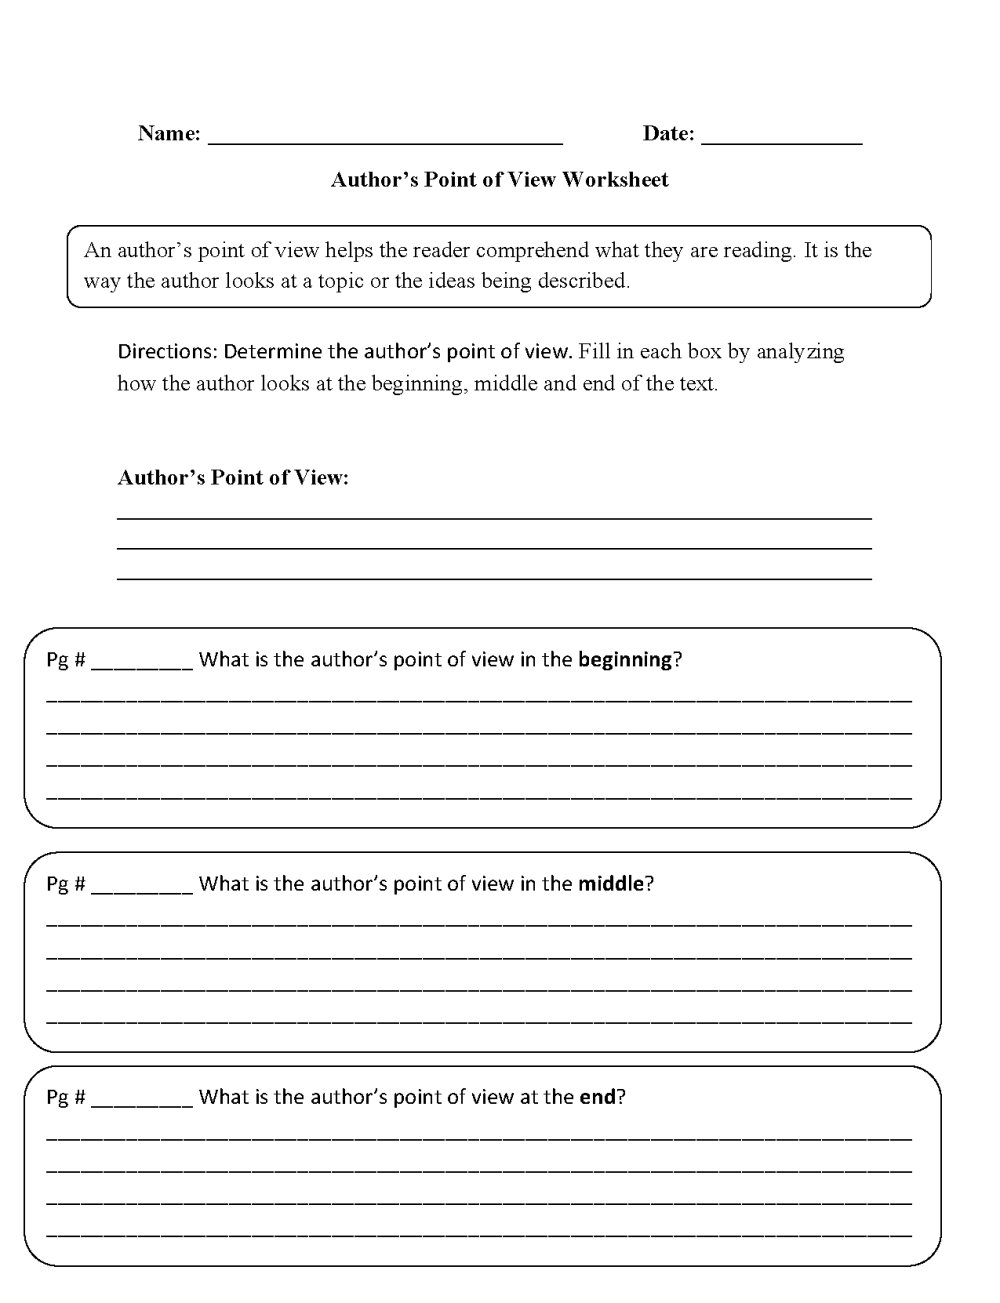 medium resolution of Point of View Worksheets   Author's Point of View Worksheets